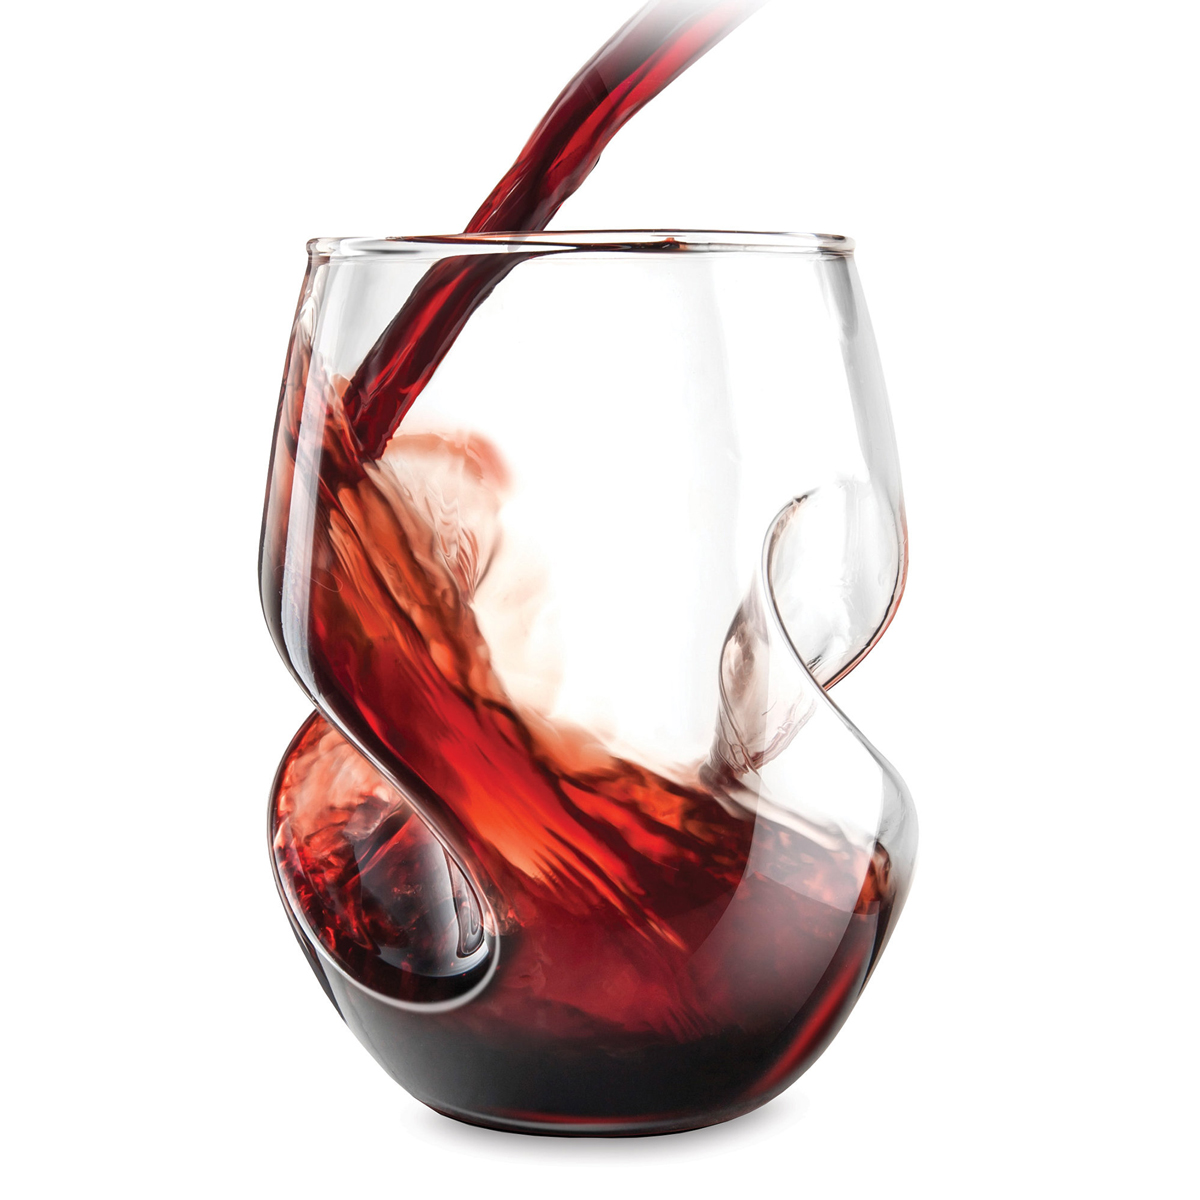 Aerating Stemless Wine Glasses The Green Head